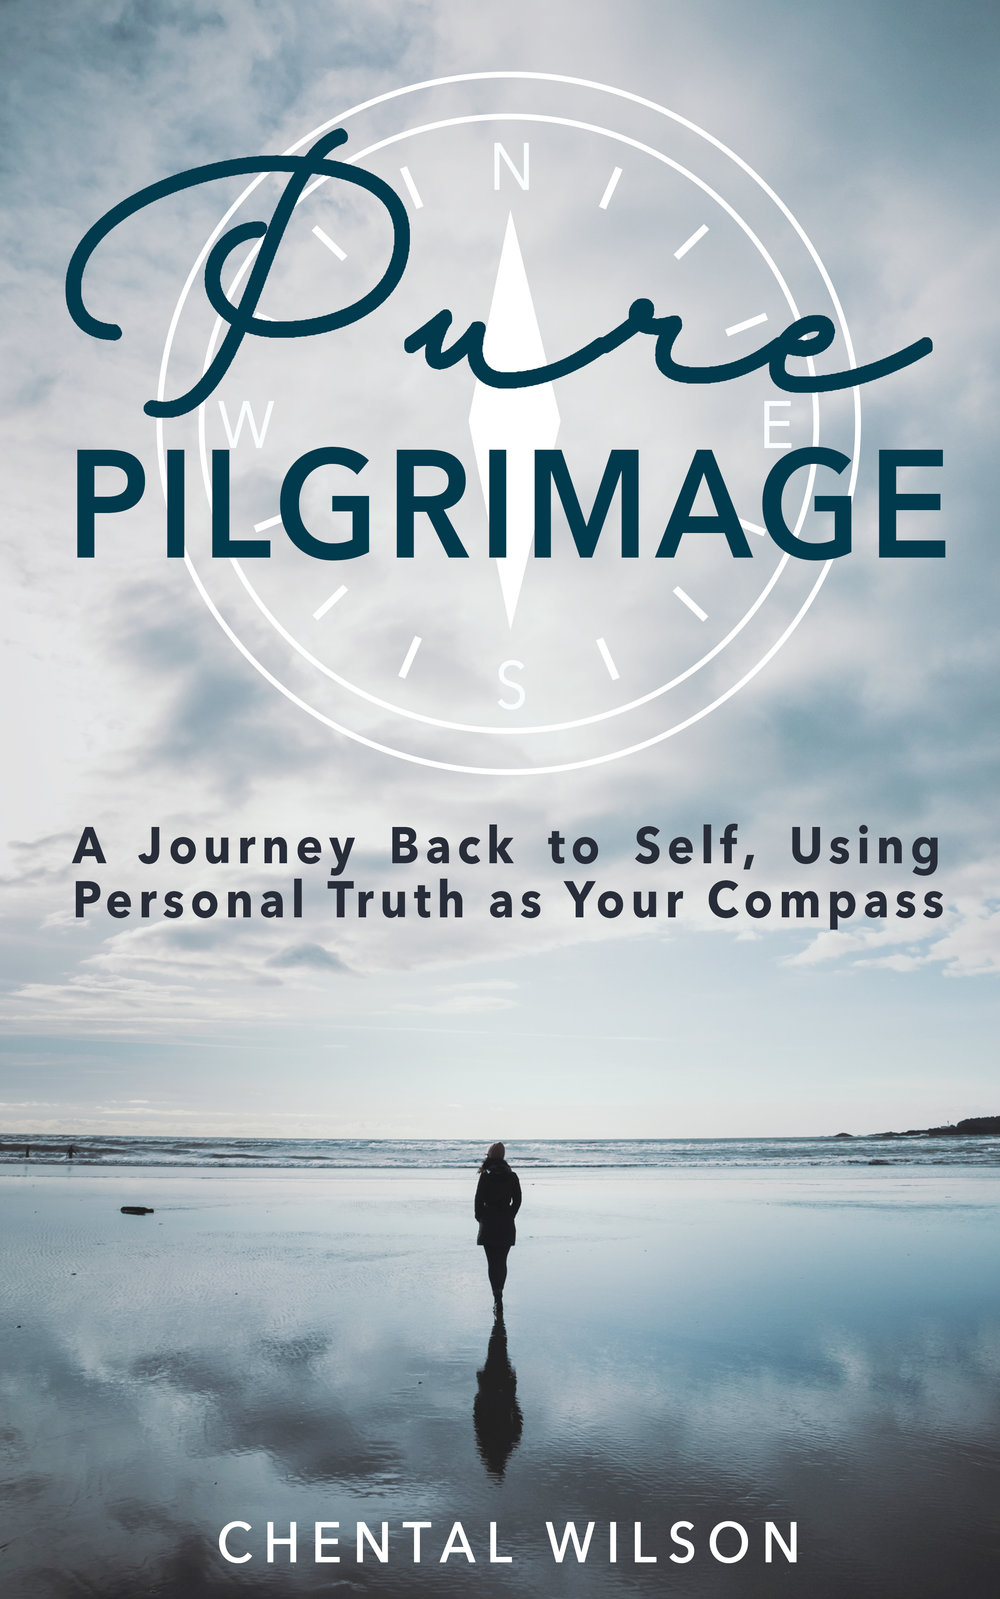 BOOKS - Released in Spring 2019, Pure Pilgrimage is about a journey back to self, using personal truth as your compass.